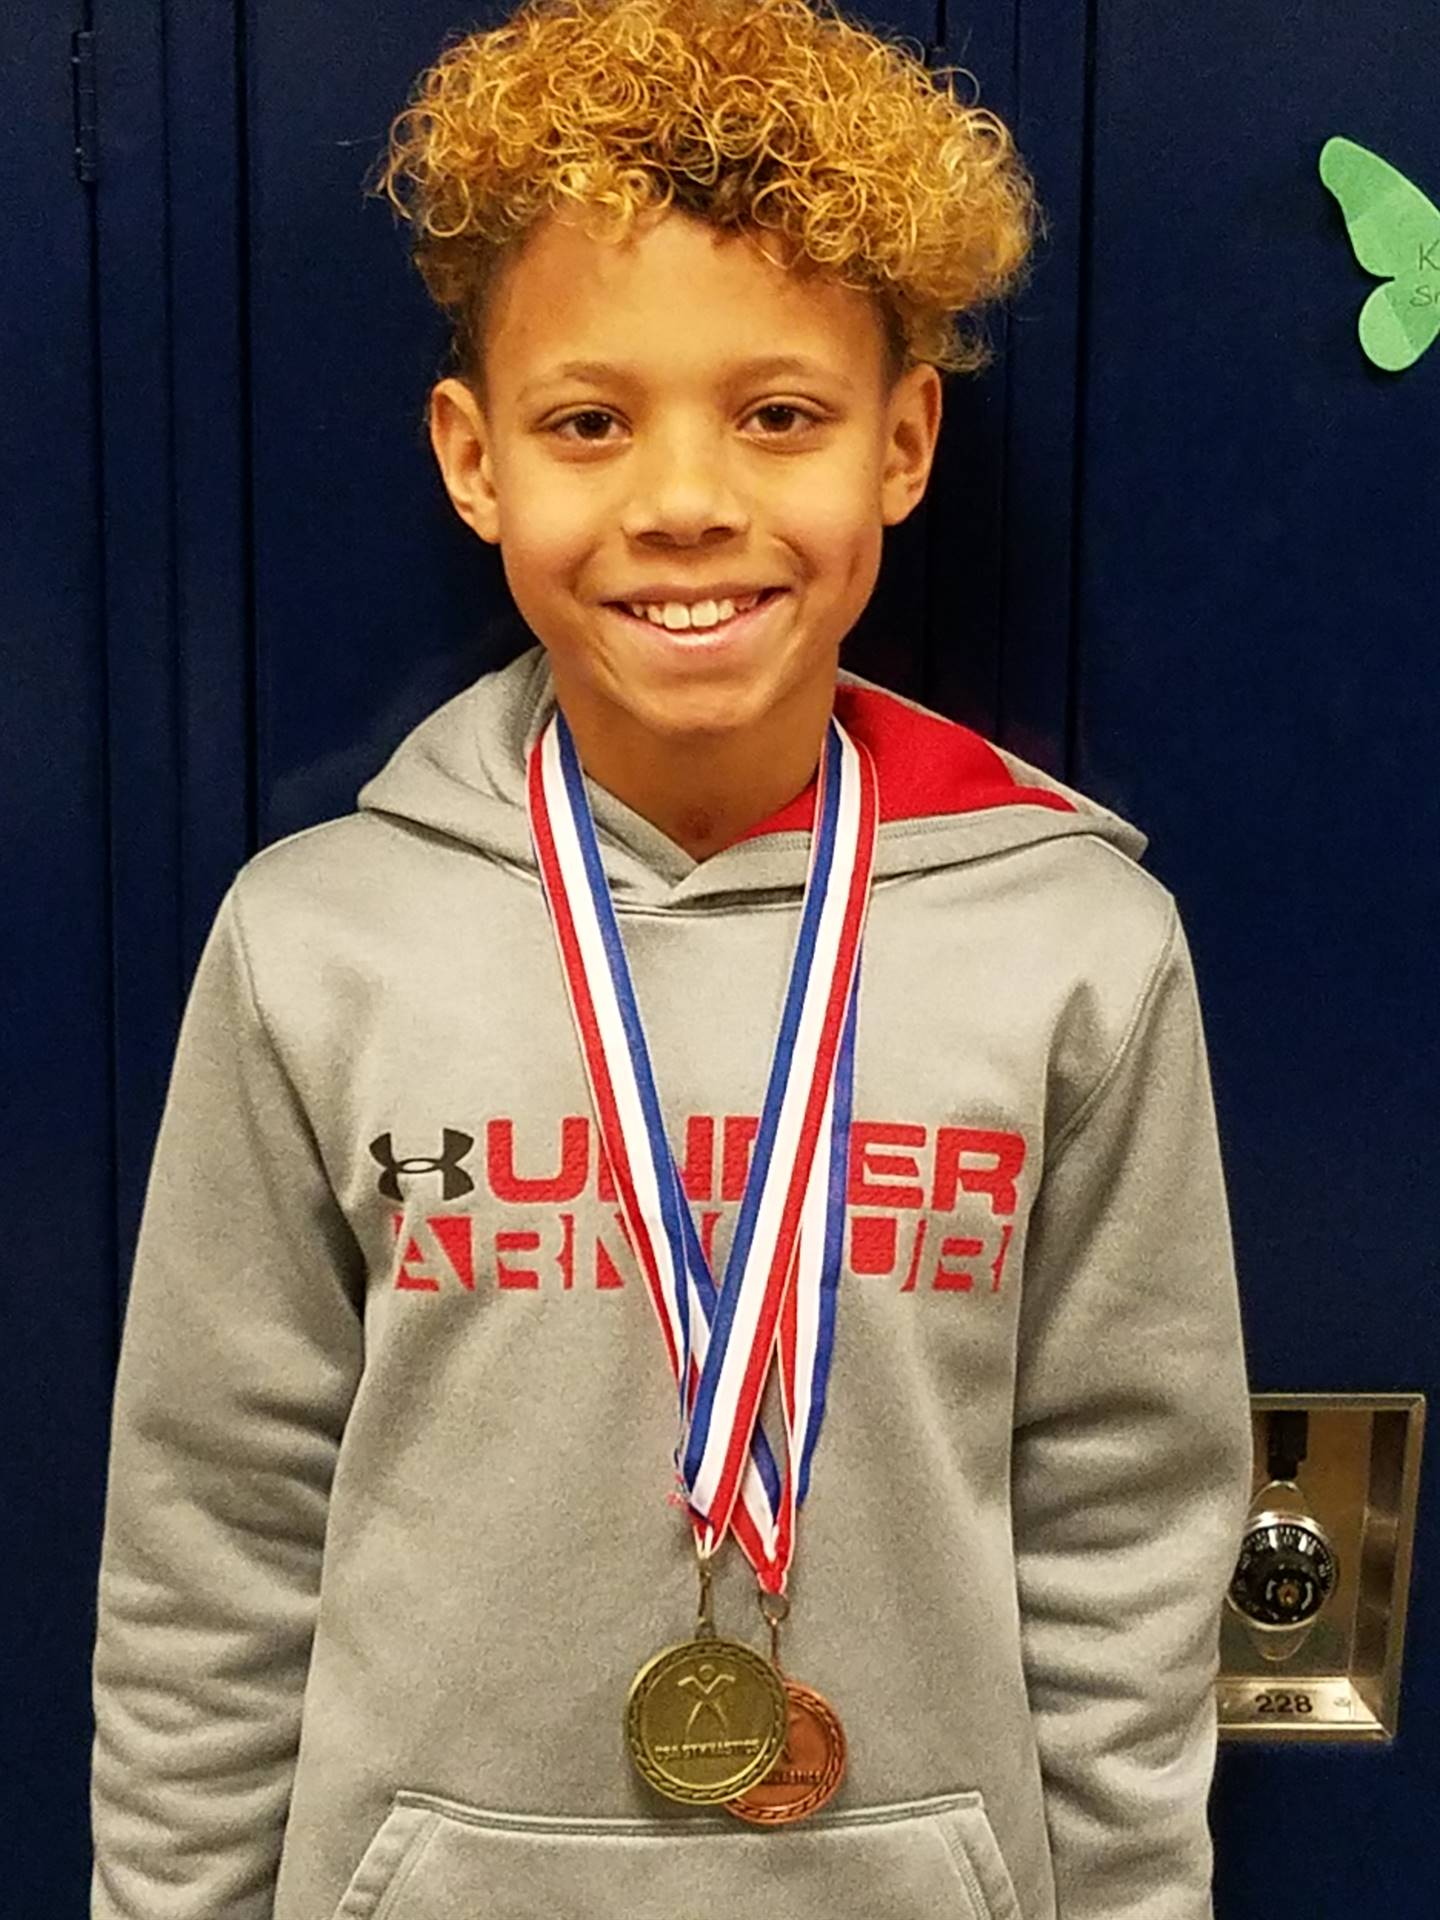 Justin Calip - Gymnastics State Champion in the Vault and 8th in the Pommel.